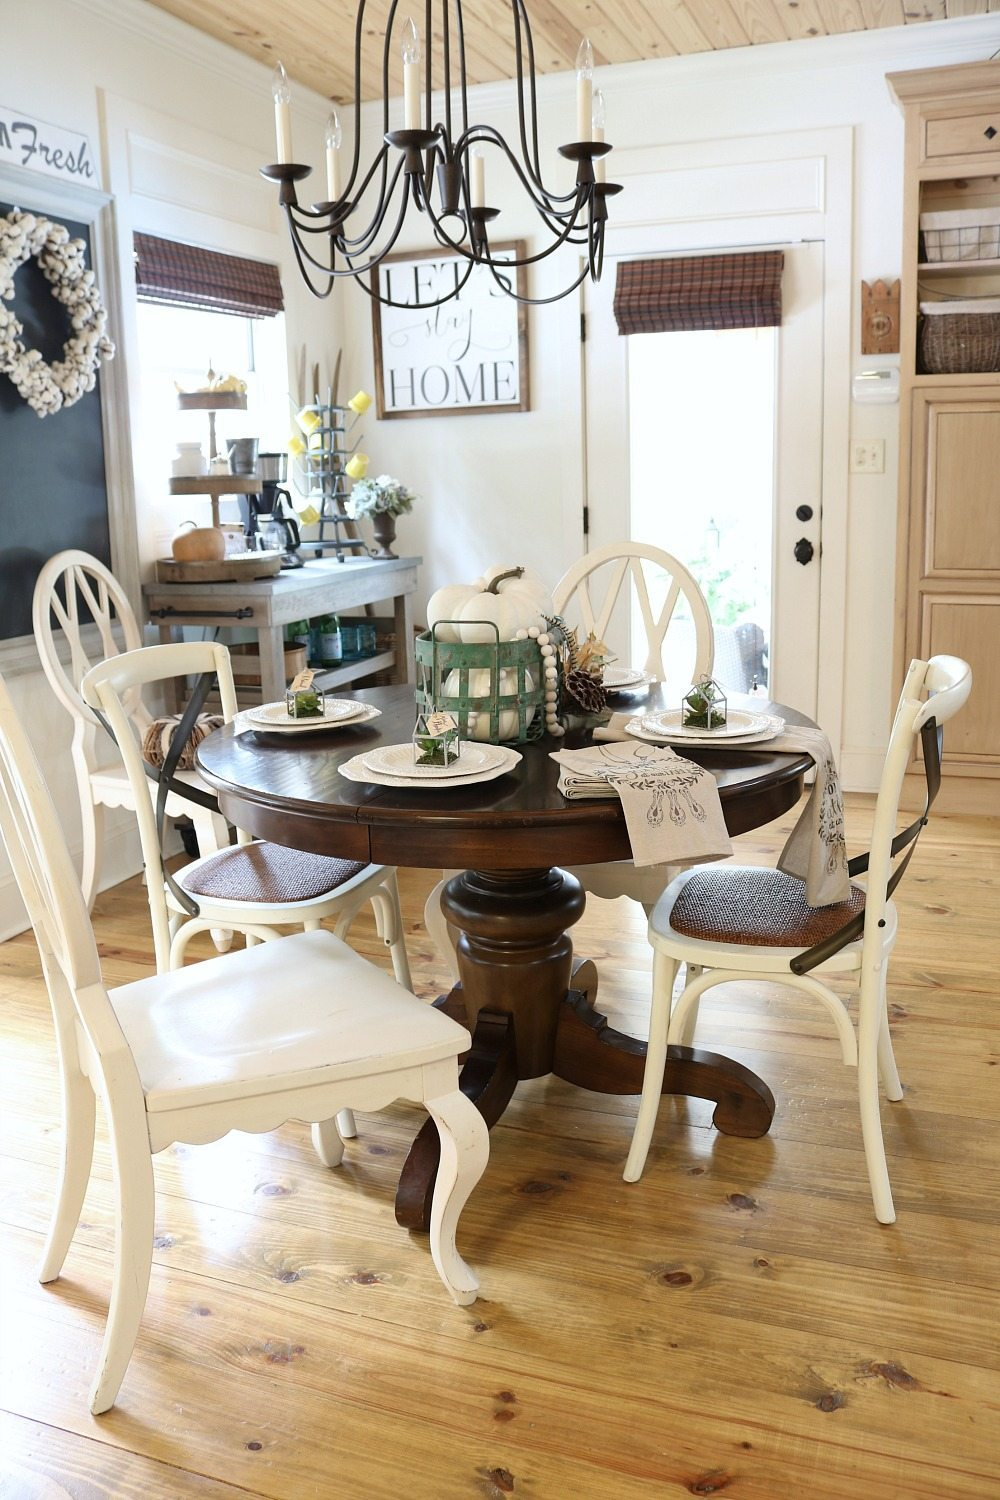 Pine floors and ceiling in the breakfast eating area at Refresh Restyle